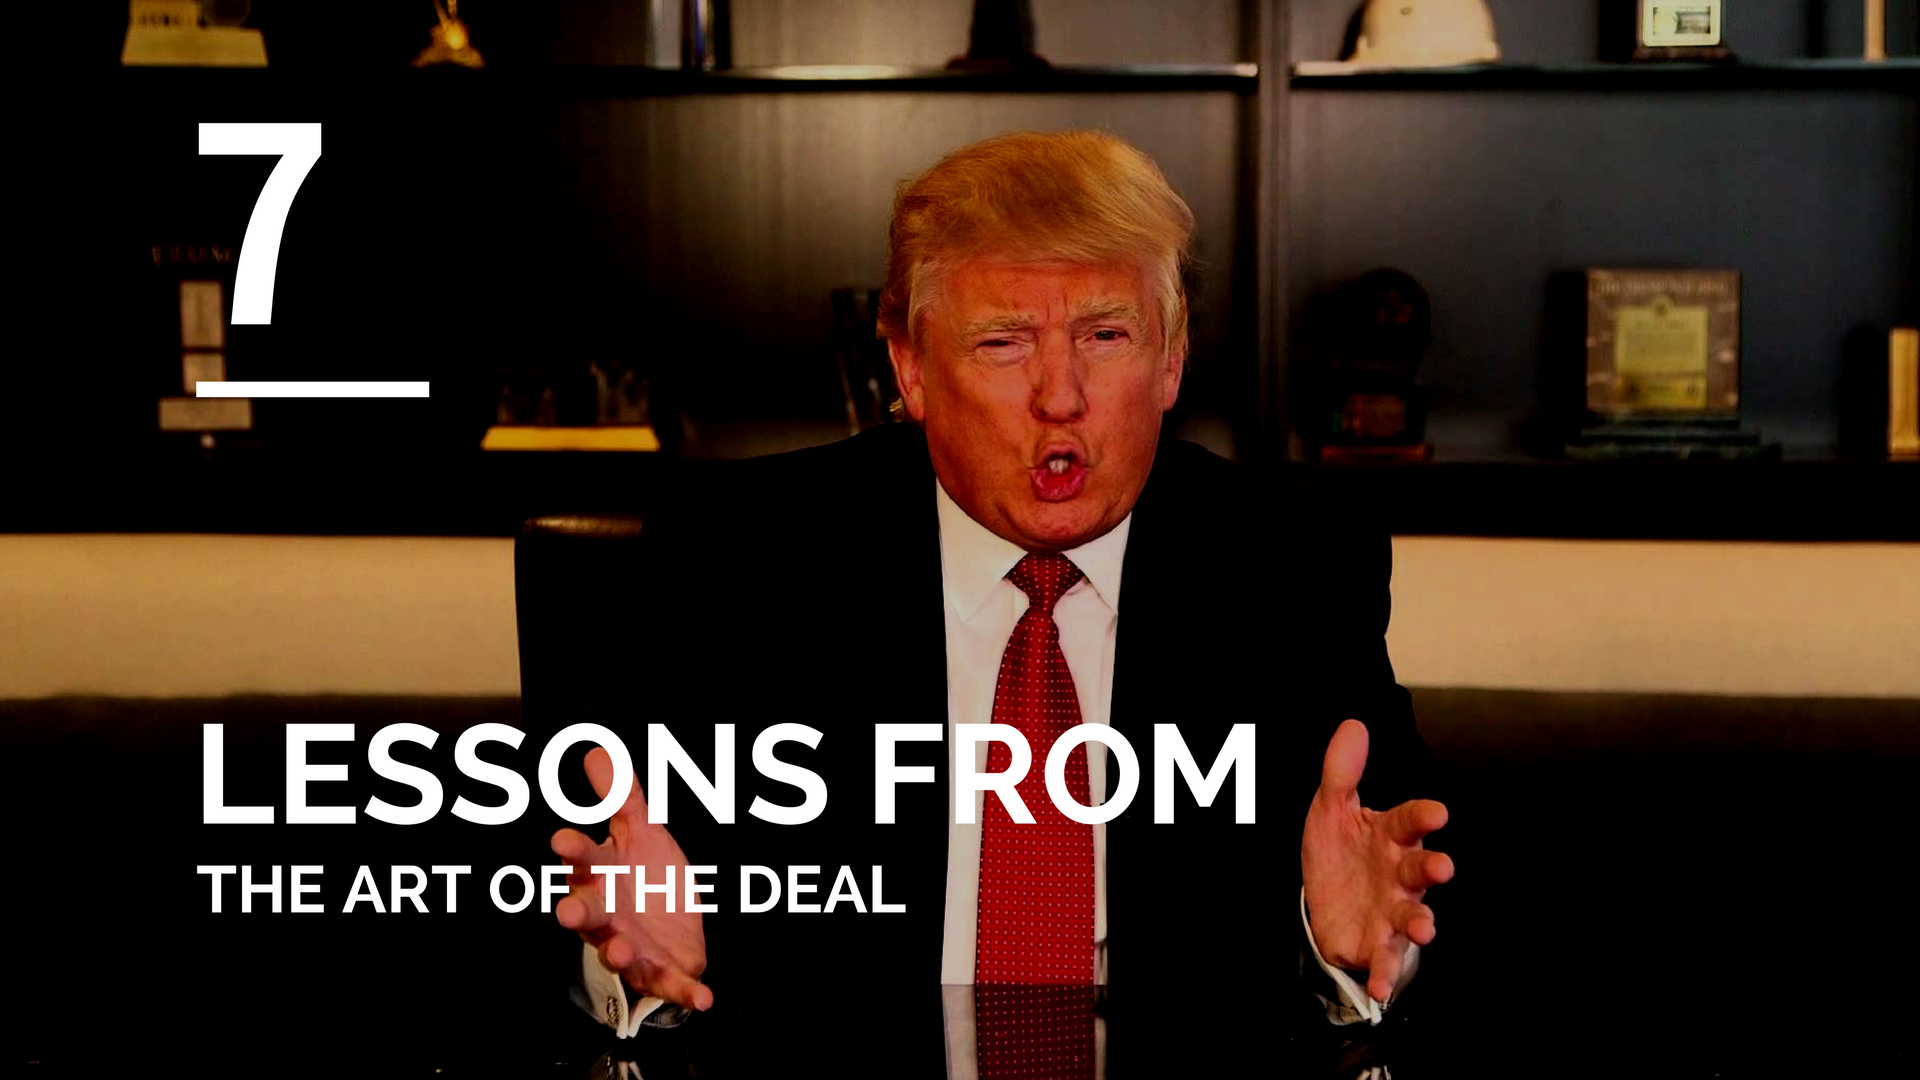 the art of the deal review